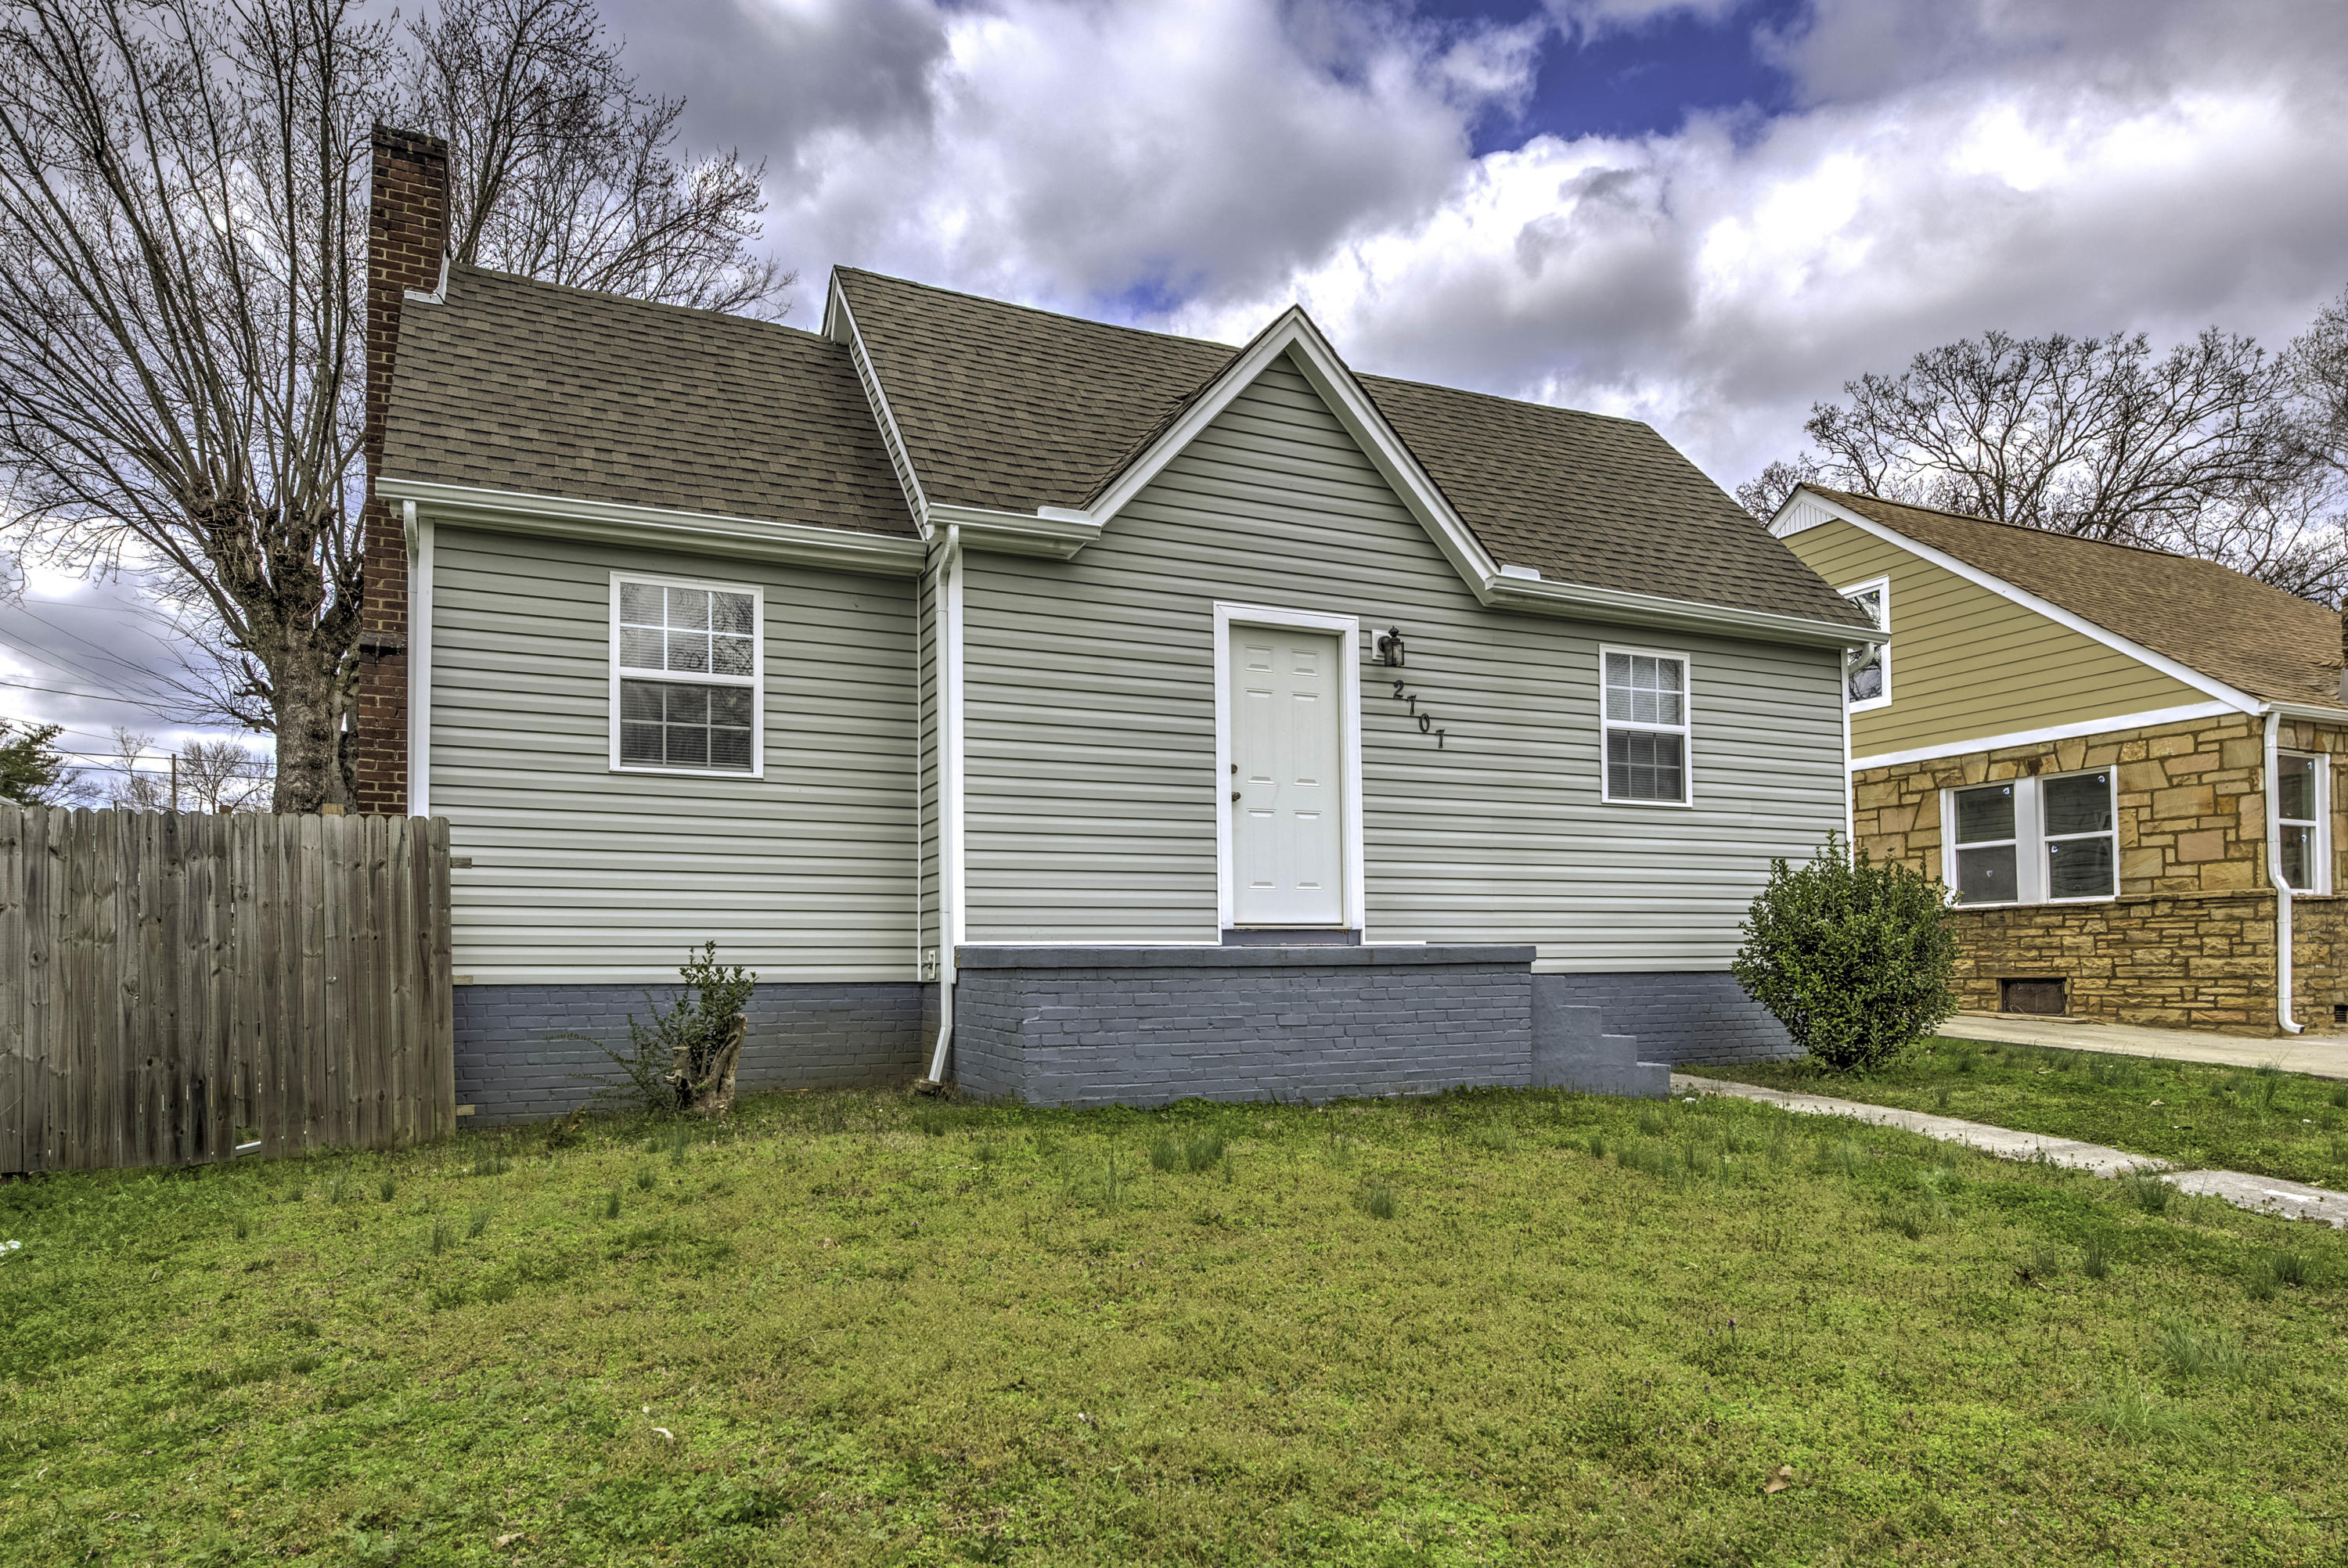 2707 Woodbine Ave, Knoxville, Tennessee 37914, 4 Bedrooms Bedrooms, ,2 BathroomsBathrooms,Single Family,For Sale,Woodbine,1110424